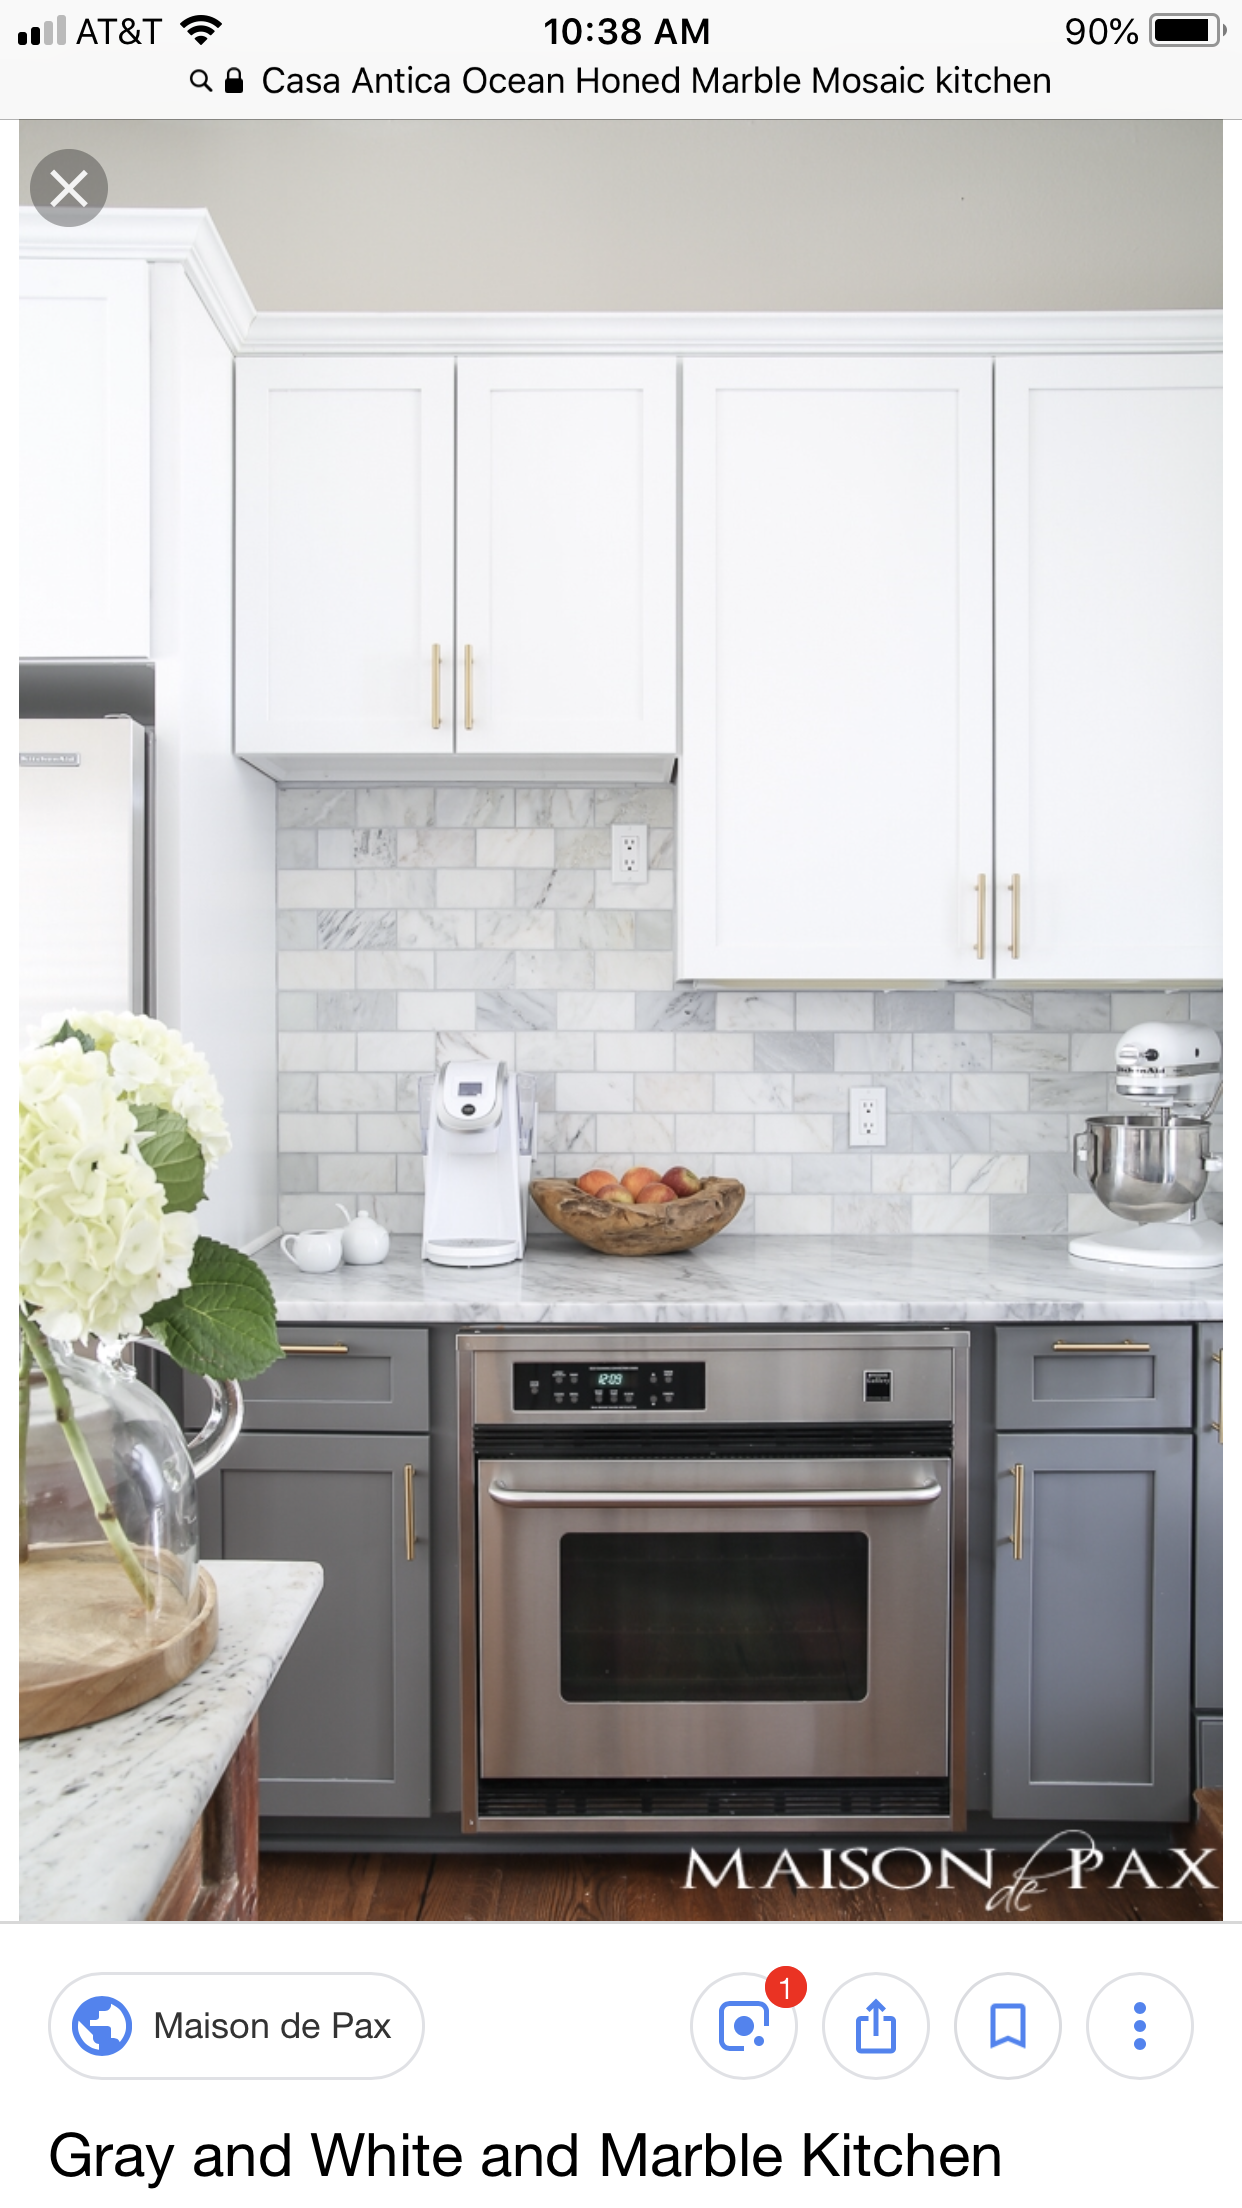 Honed Marble Mosaic Kitchen